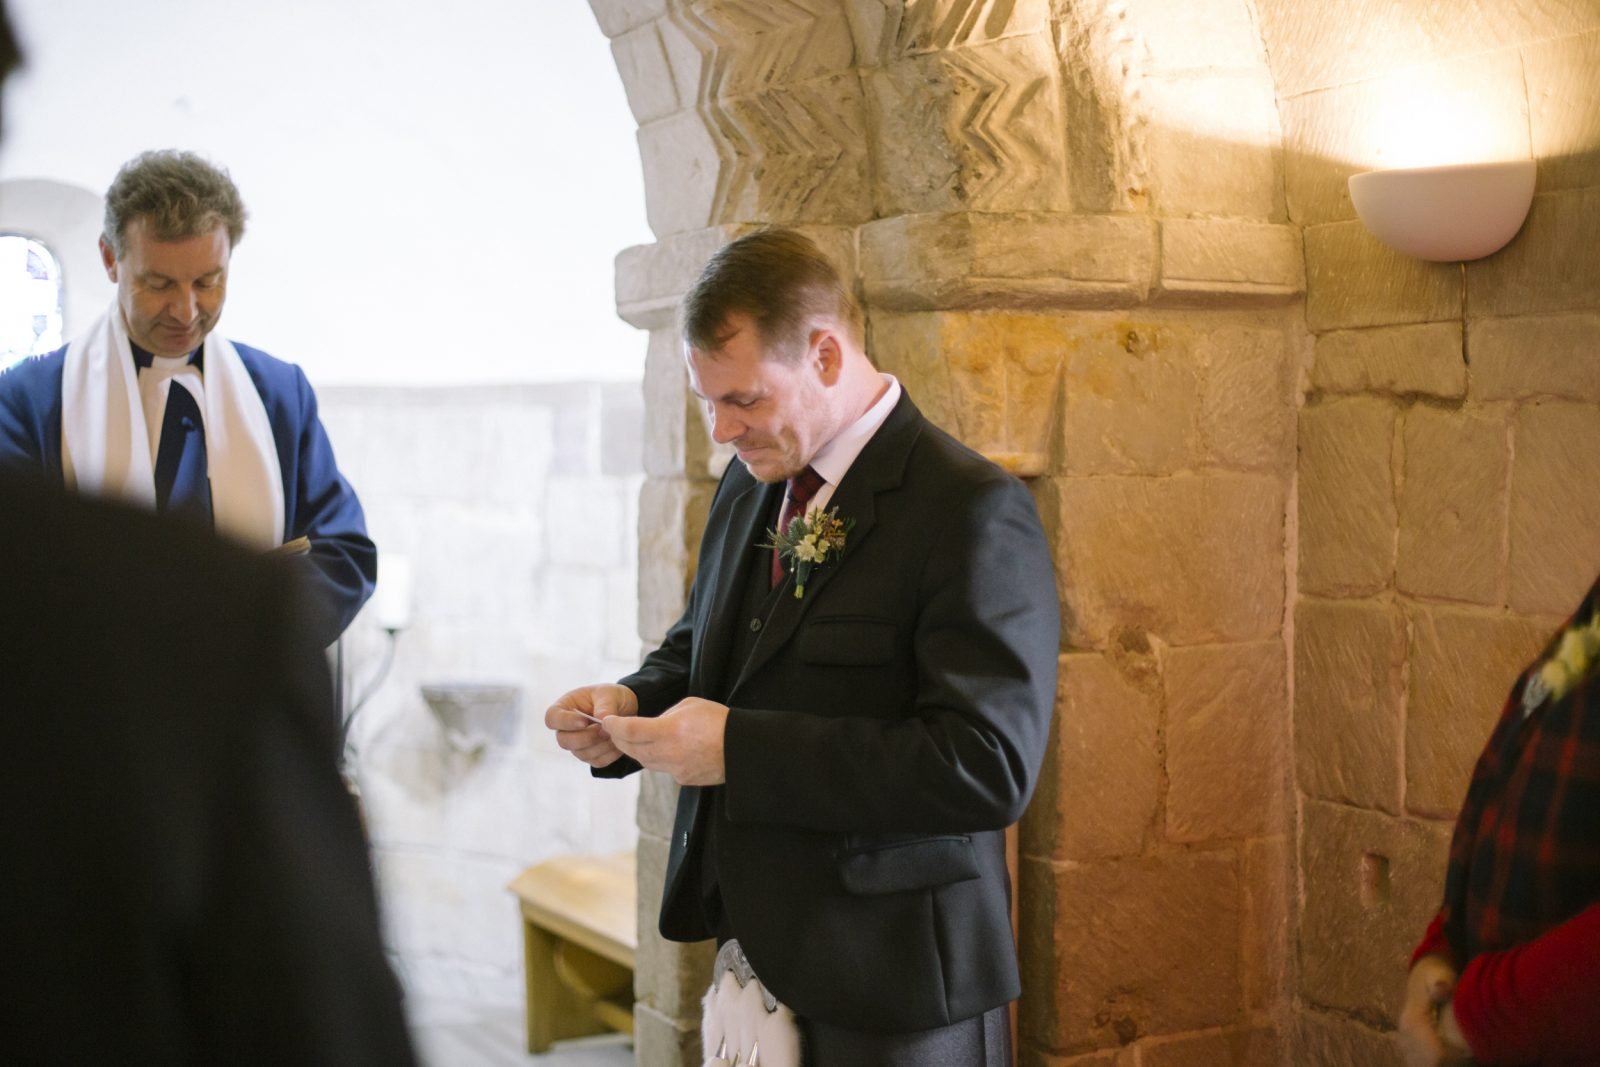 Edinburgh Castle Destination Elopement Photography | Edinburg Castle Wedding Photography | Scottish Destination Wedding | St Margaret's Chapel Elopement | intimate wedding photography by Ceranna | Edinburgh Wedding Photographer